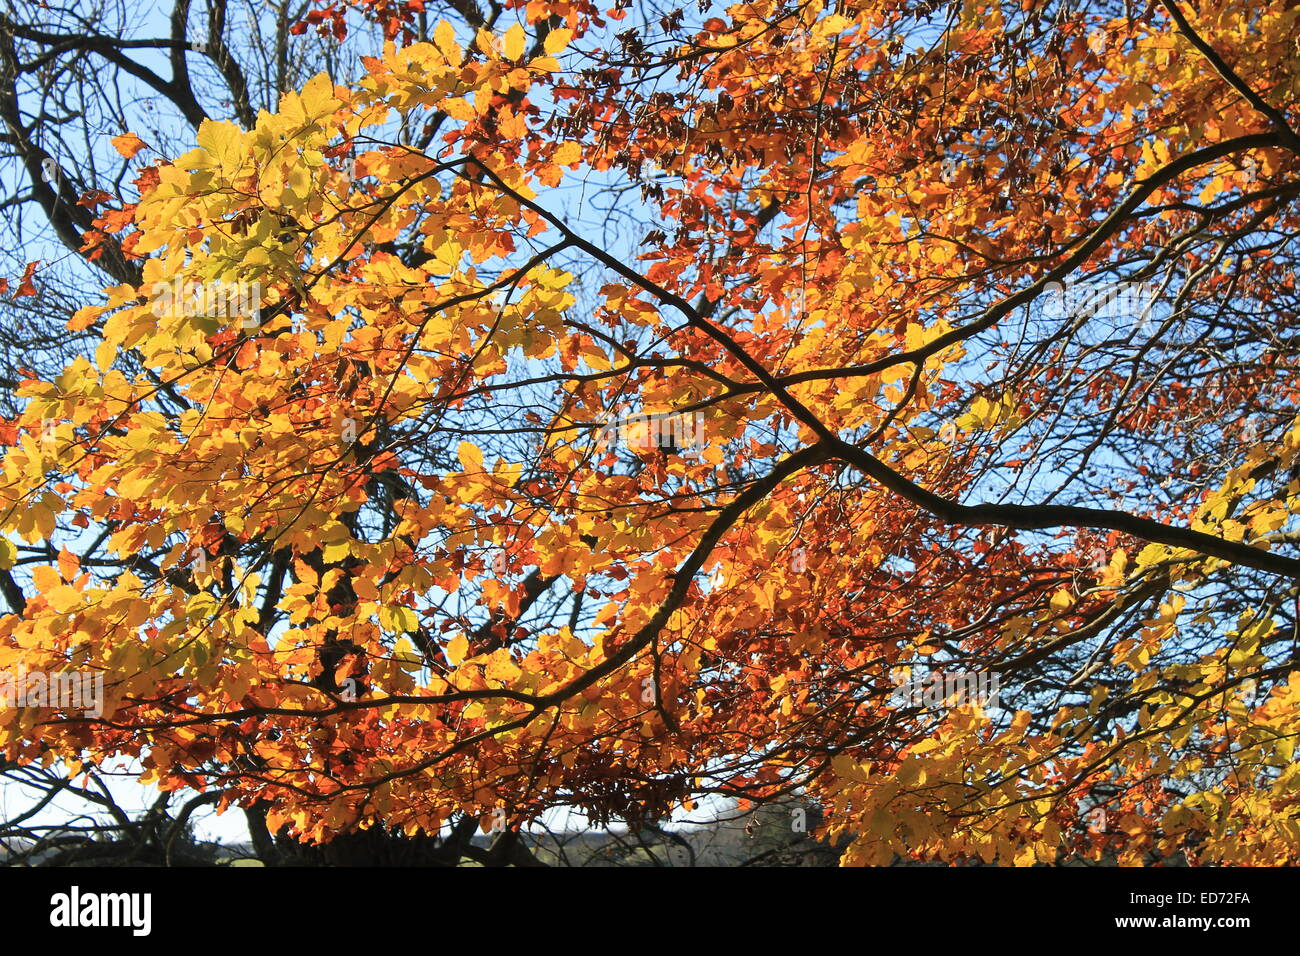 Golden and russet beech tree leaves lit by a low December sun against a clear blue sky, Hampshire, England, UK - Stock Image